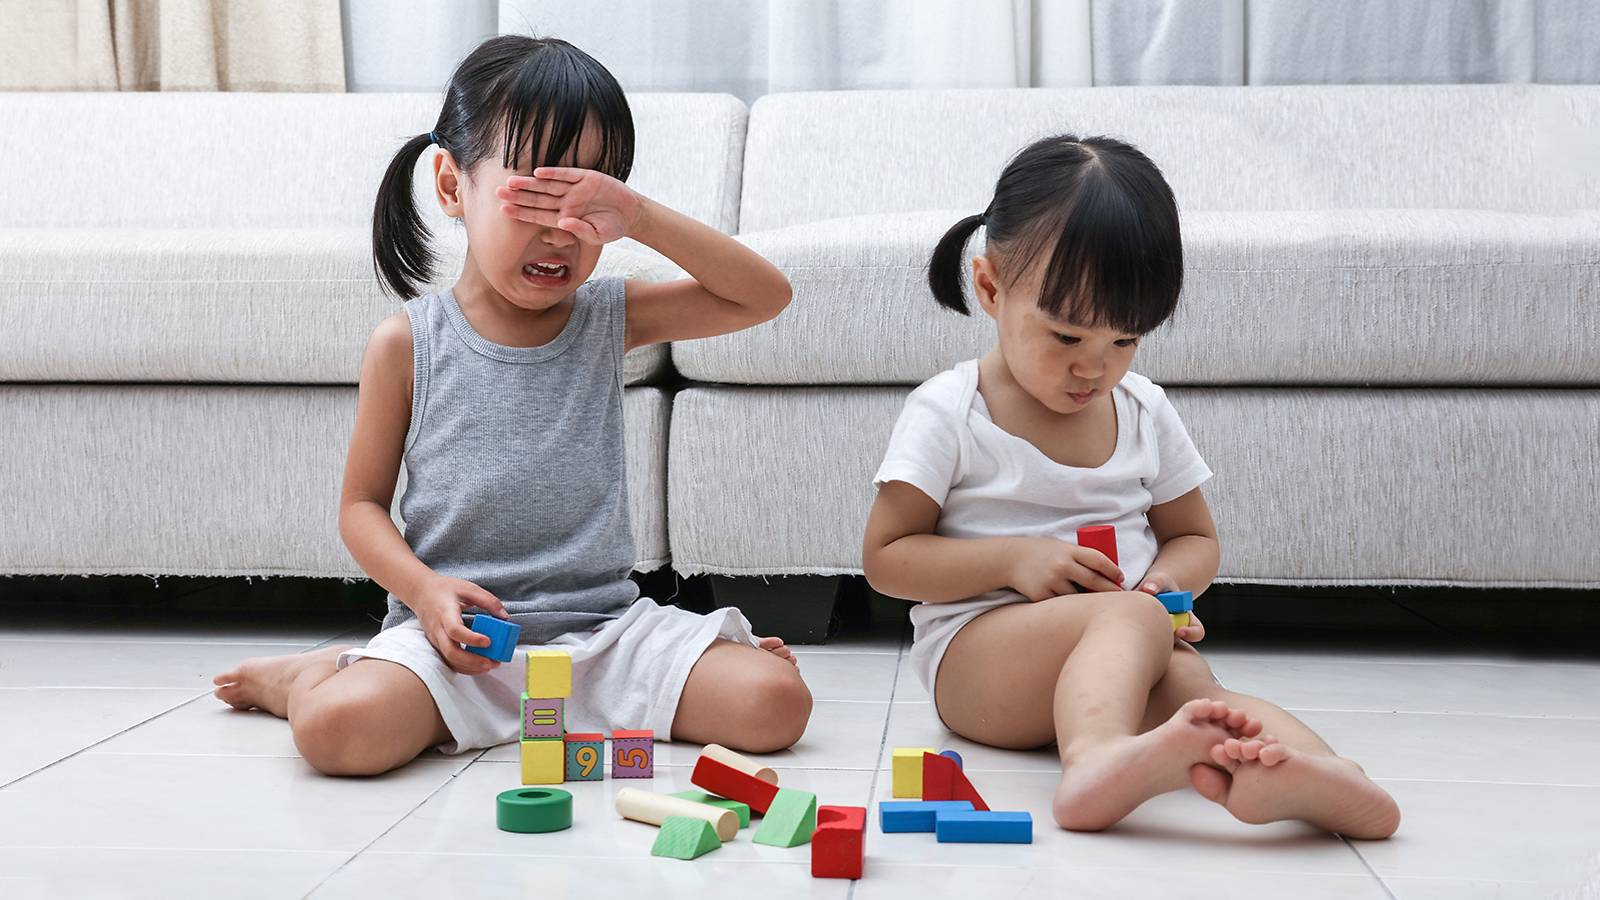 8 ways kids seem to be naughty but actually aren't2